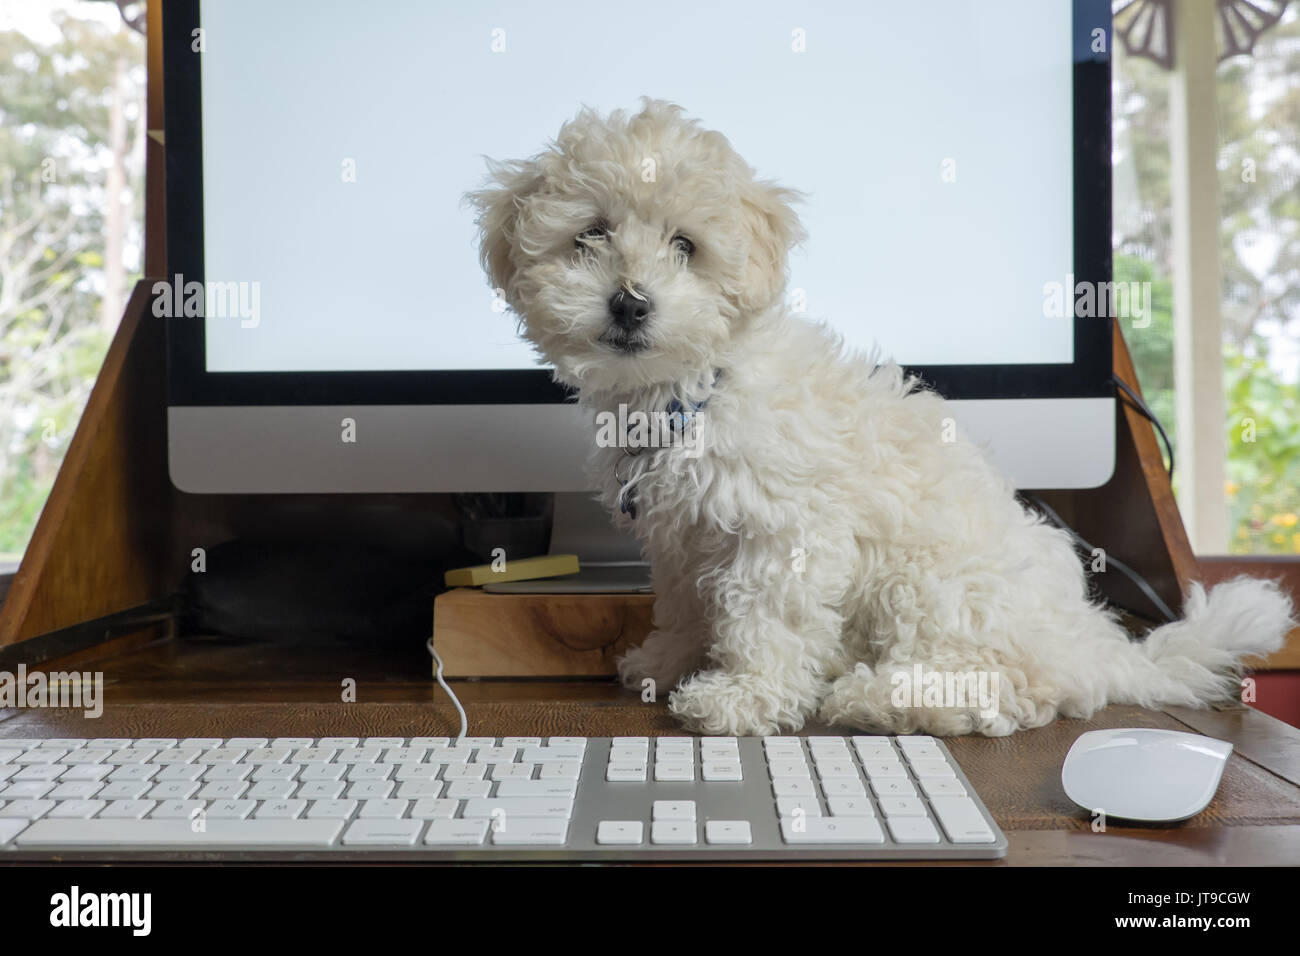 Working from home office with bichon frise puppy dog on desk with computer screen, keyboard and mouse - Stock Image